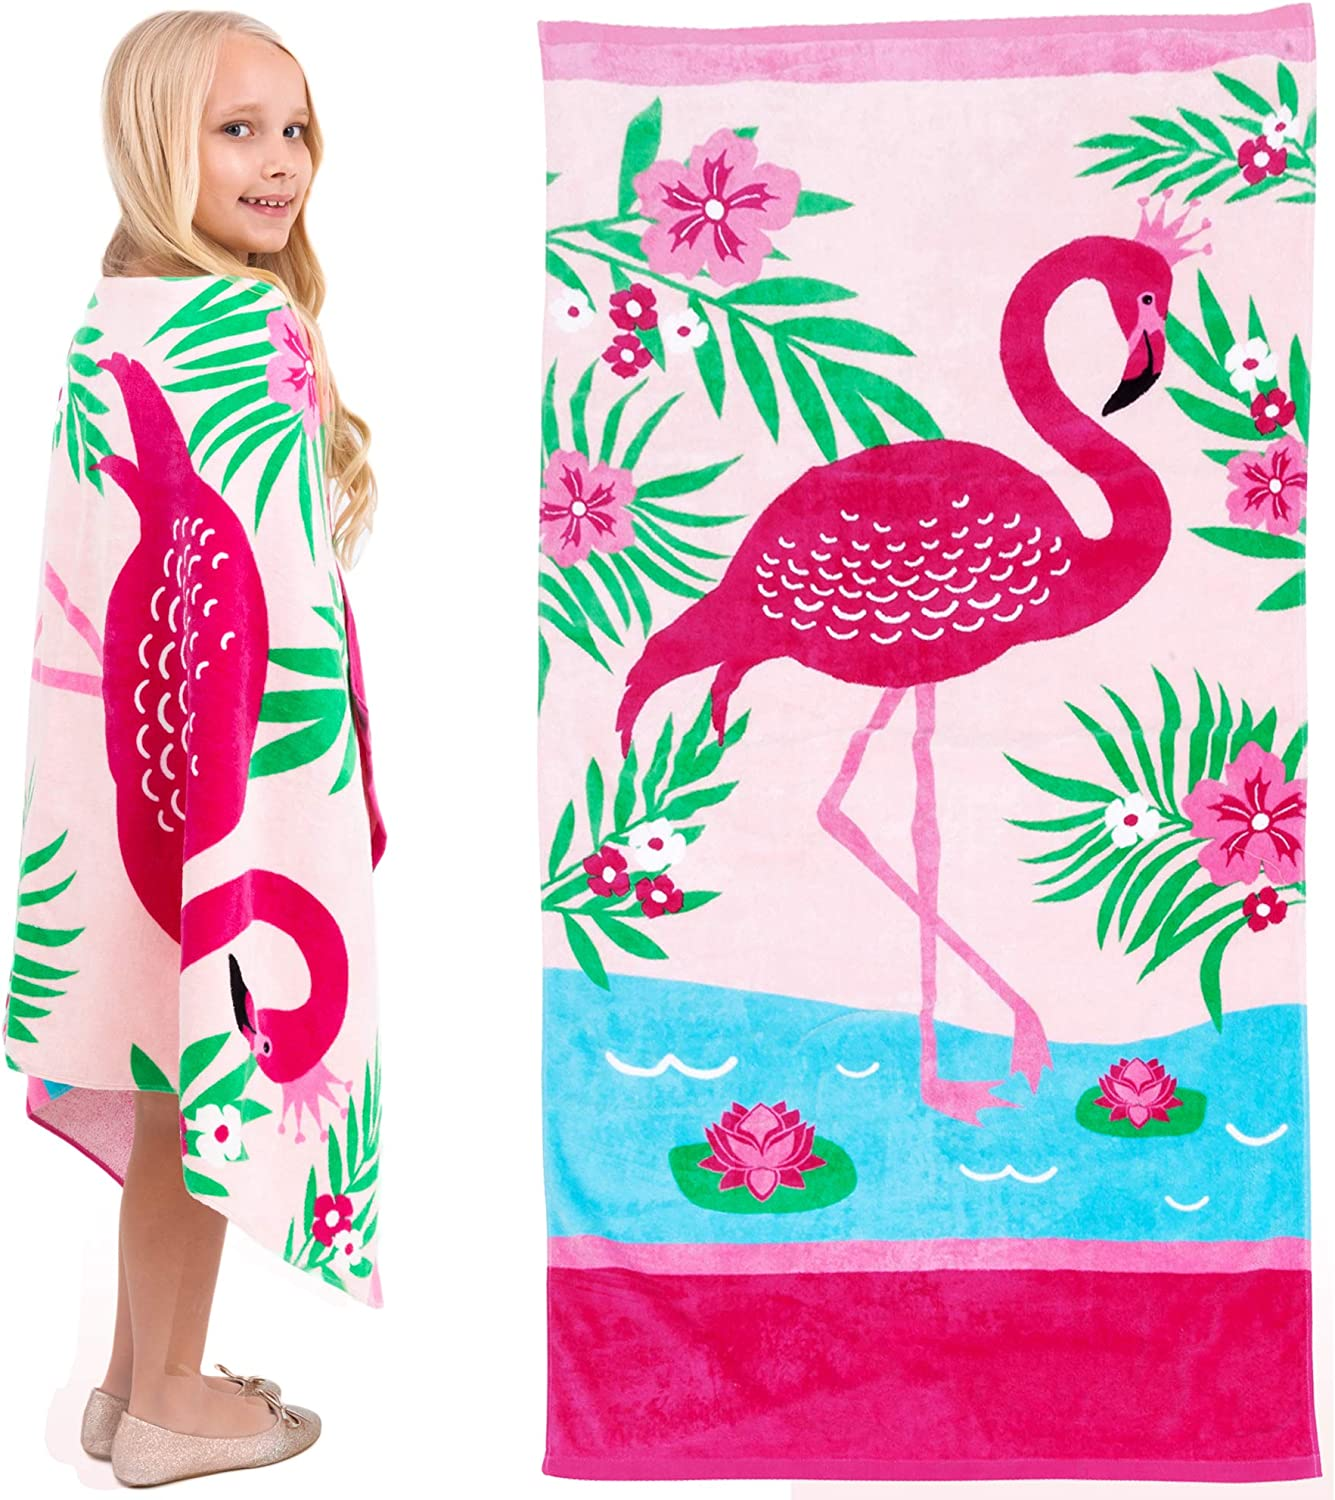 Incredibly Soft Highly Absorbent Personalized Towel 30 59 Custom Micro Velour Bath Towel,Gift for Friends and Family Flamingo Print Rectangular Beach Towel